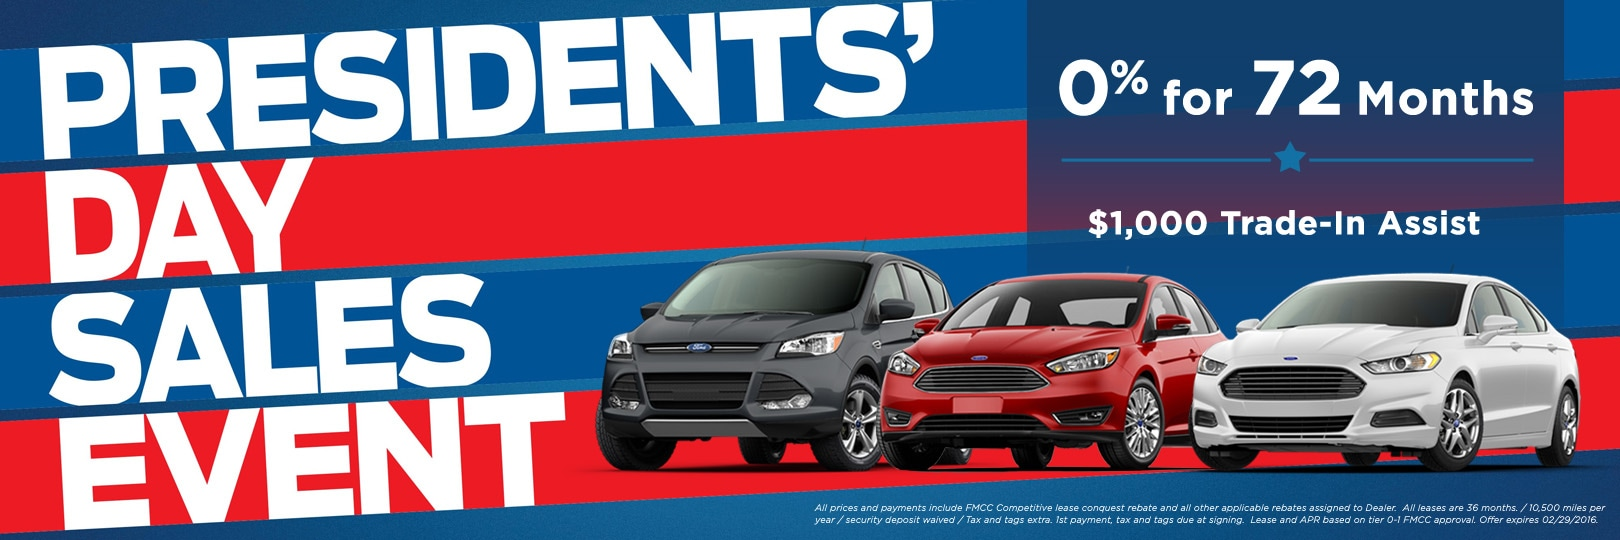 Best Presidents Day Car Sales